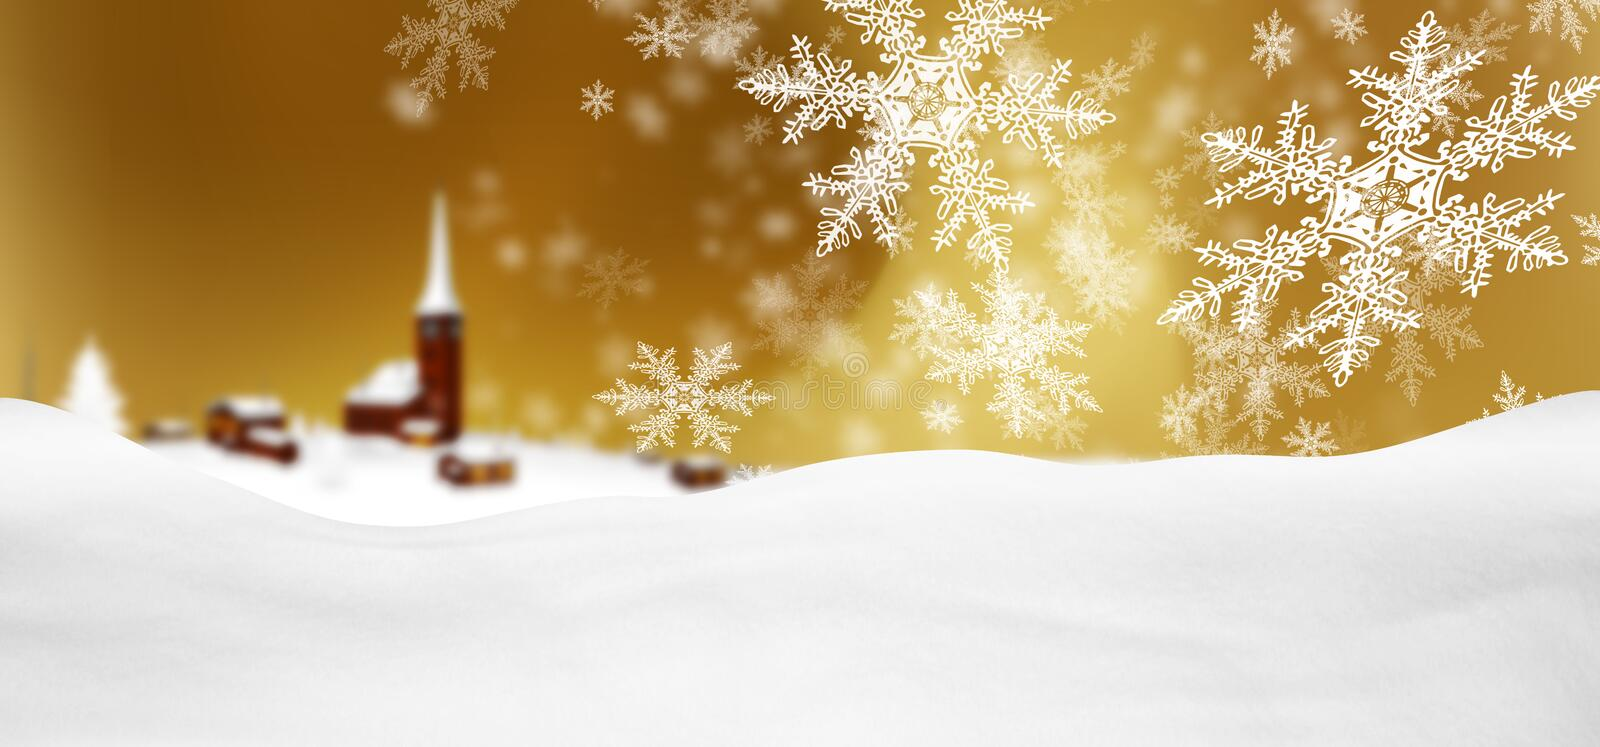 Abstract Golden Background Panorama Winter Landscape with Fallin stock illustration